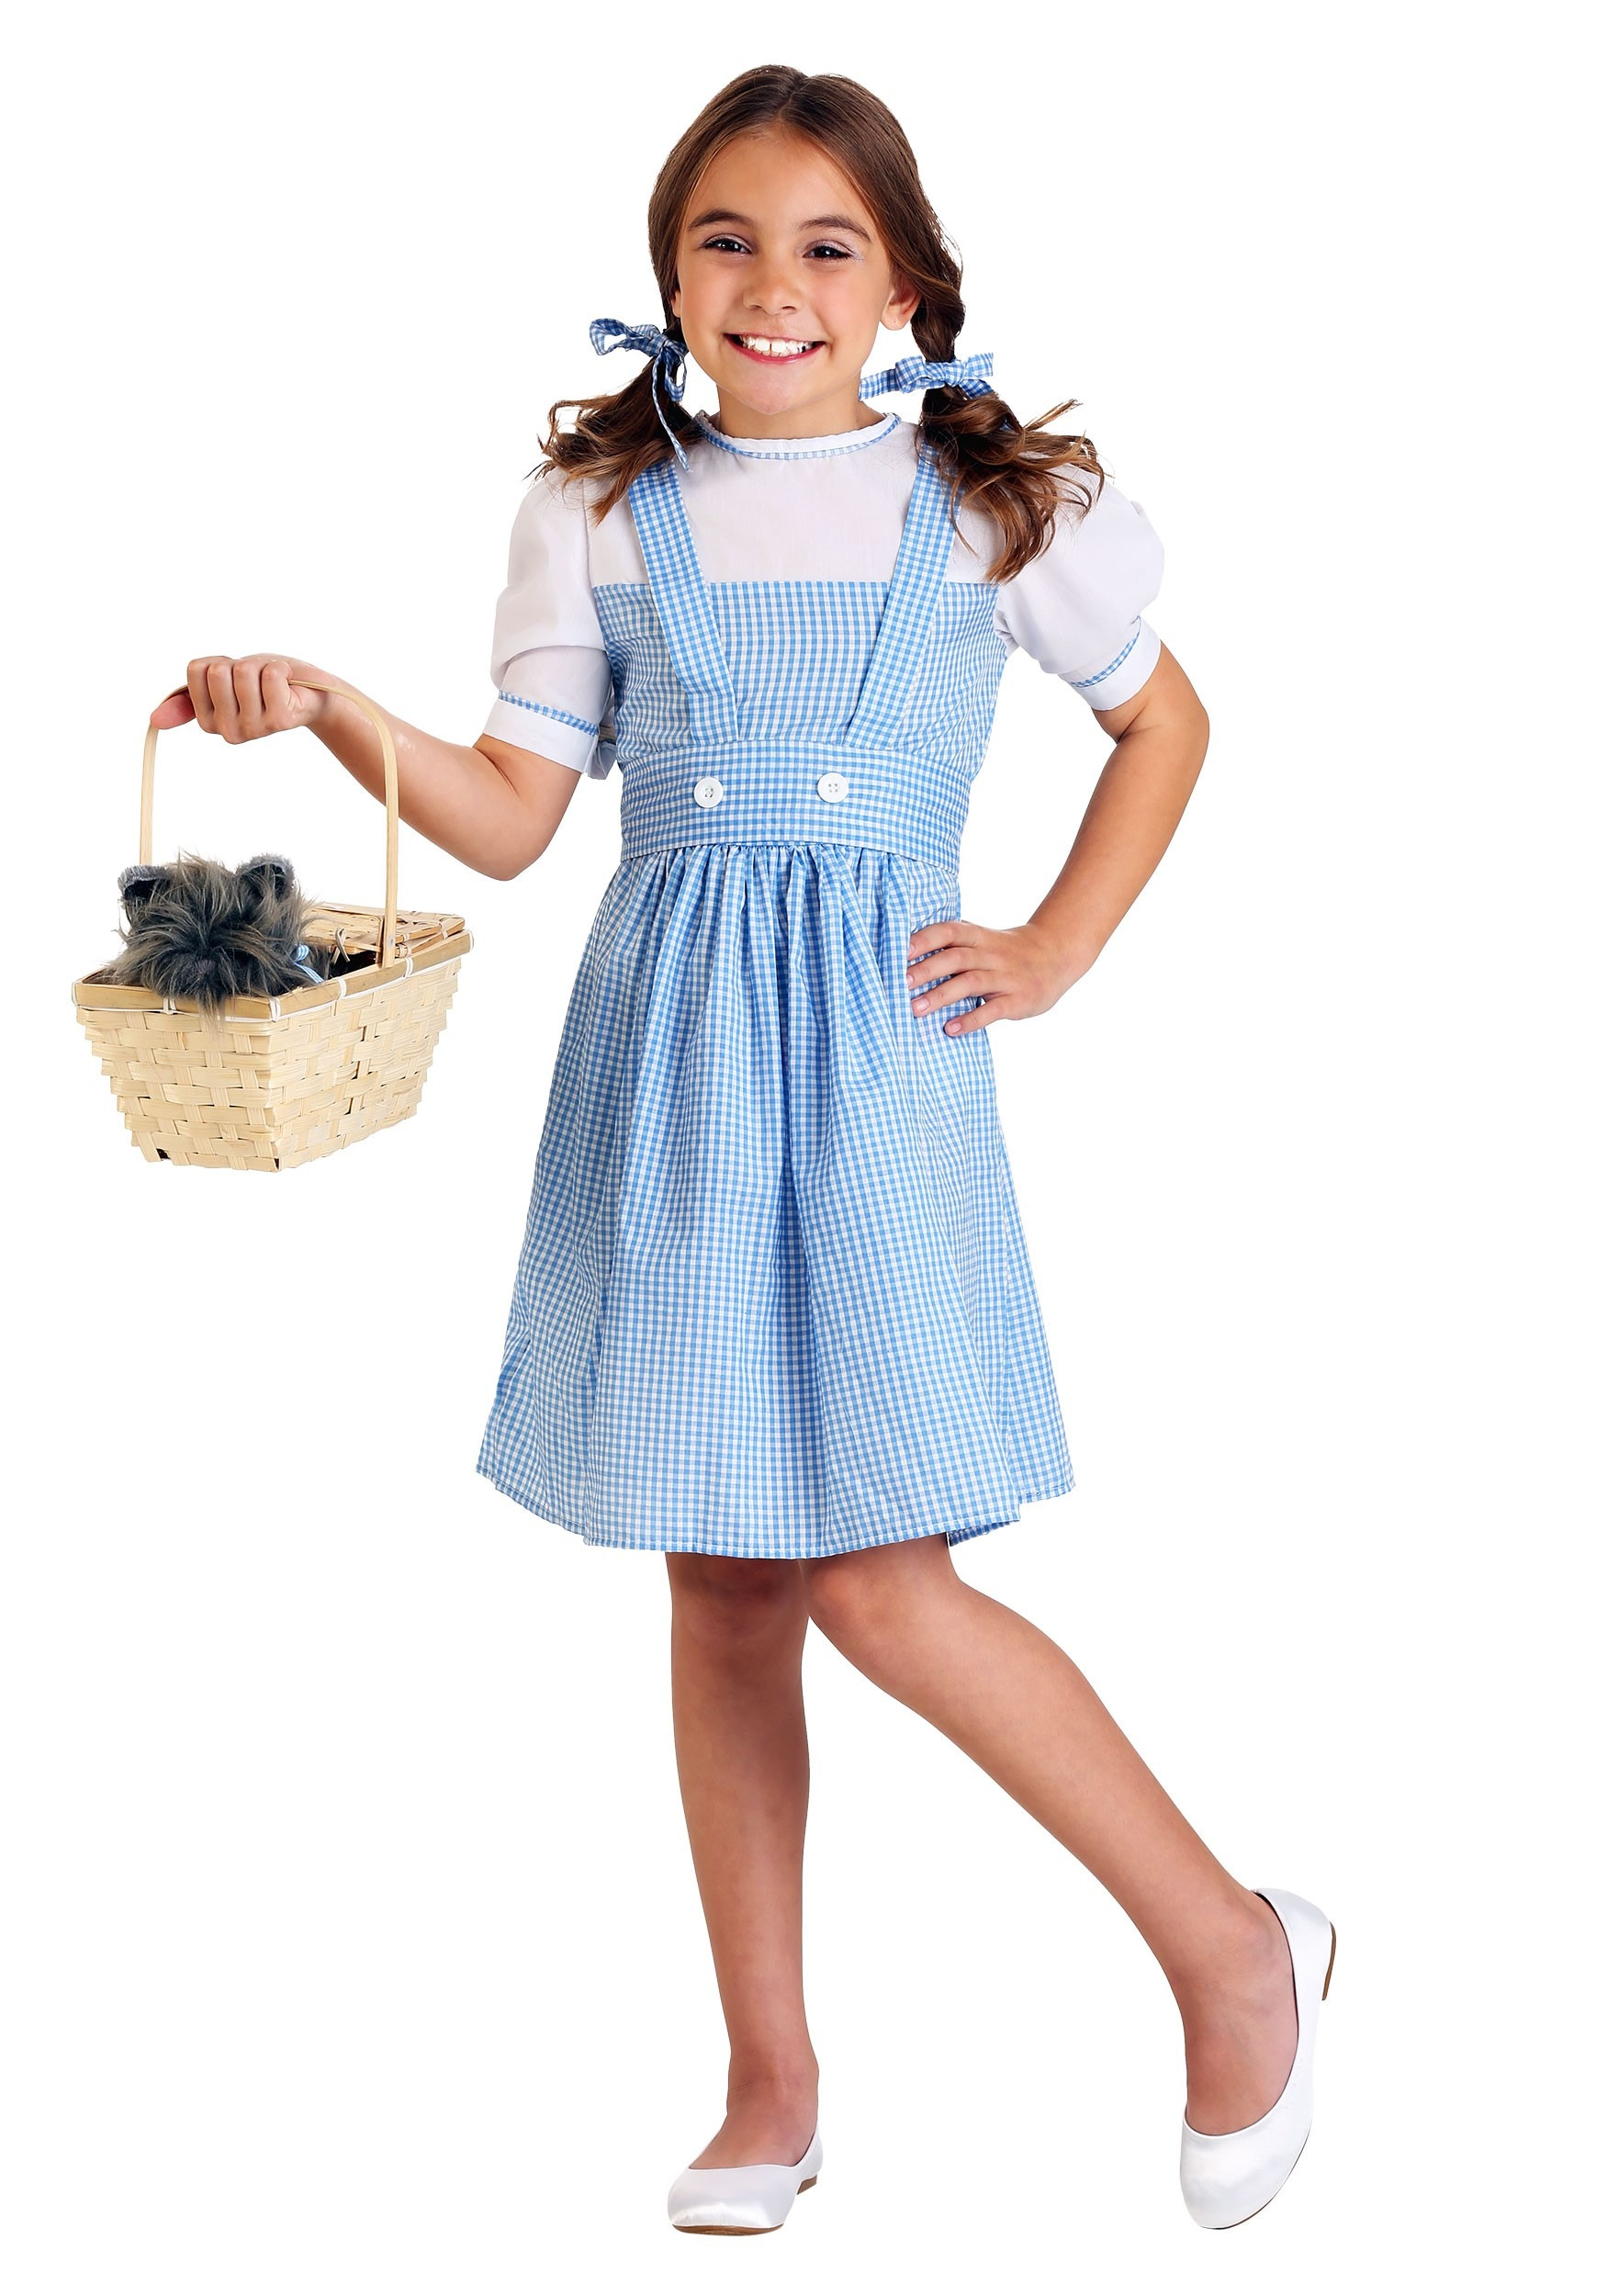 Nwt Girls Wizard Of Oz Dorothy Costume Fantasy Nightgown With Ruby Slippers Girls' Clothing (newborn-5t)